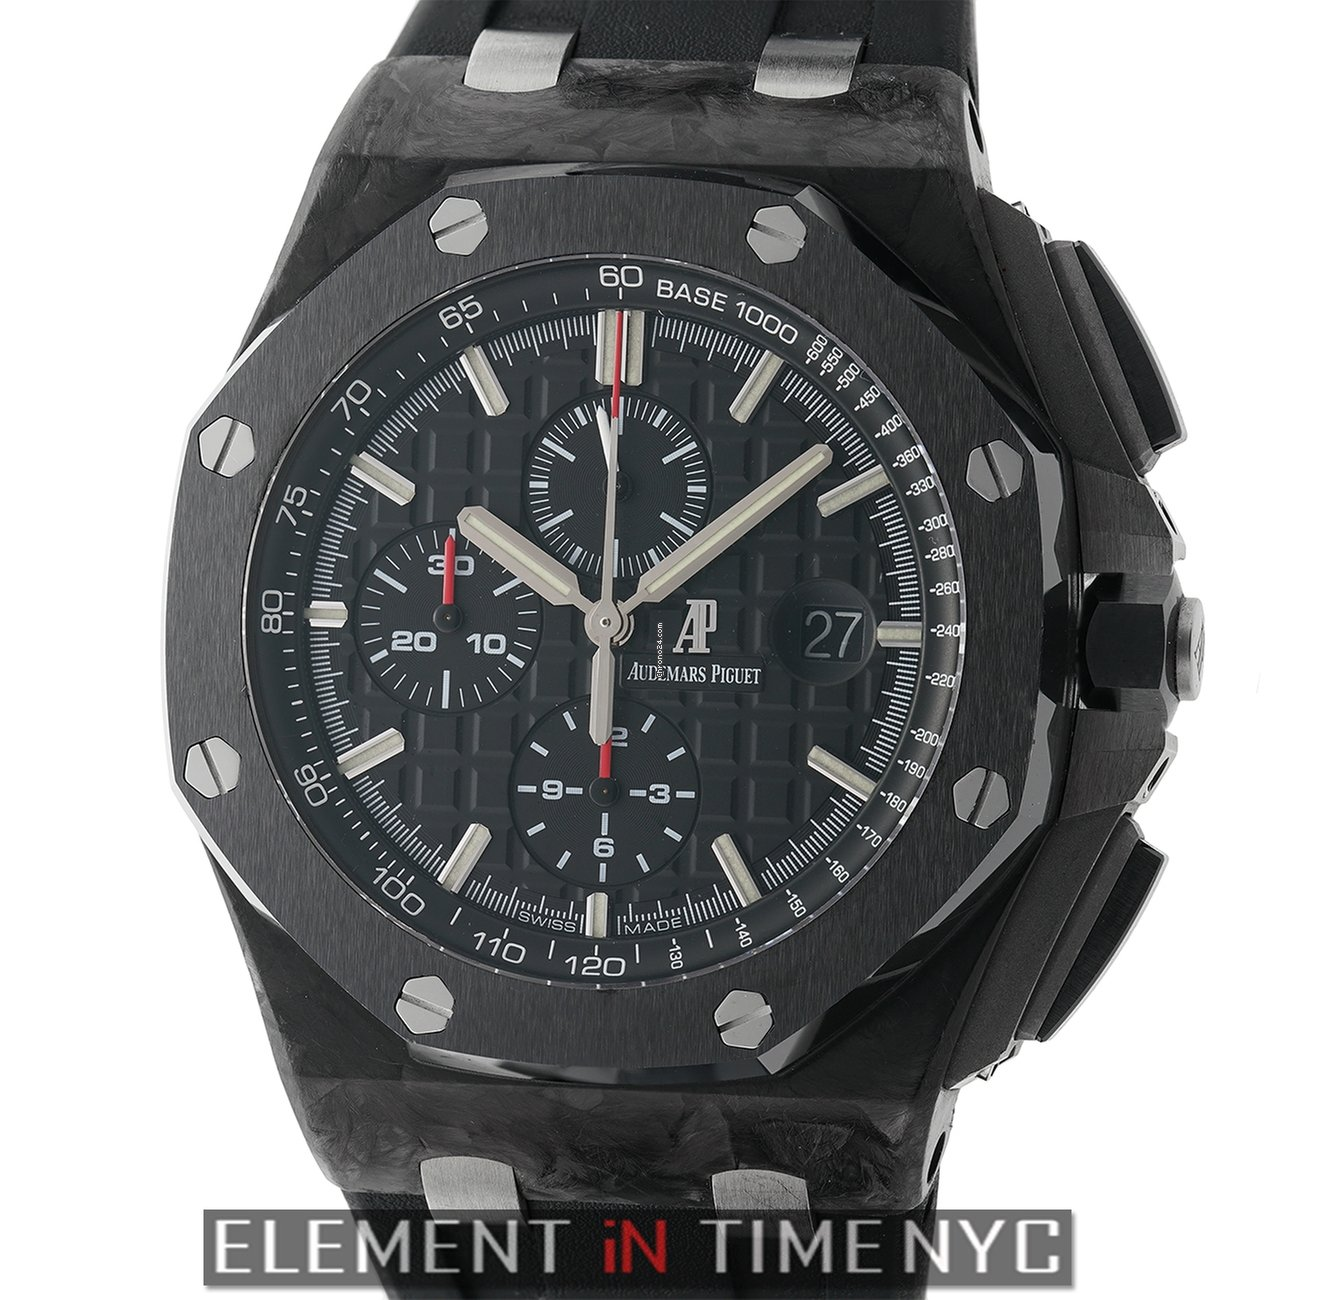 2a4c871eaa6 Audemars Piguet Royal Oak Offshore Chronograph Forged Carbon... for $29,495  for sale from a Trusted Seller on Chrono24